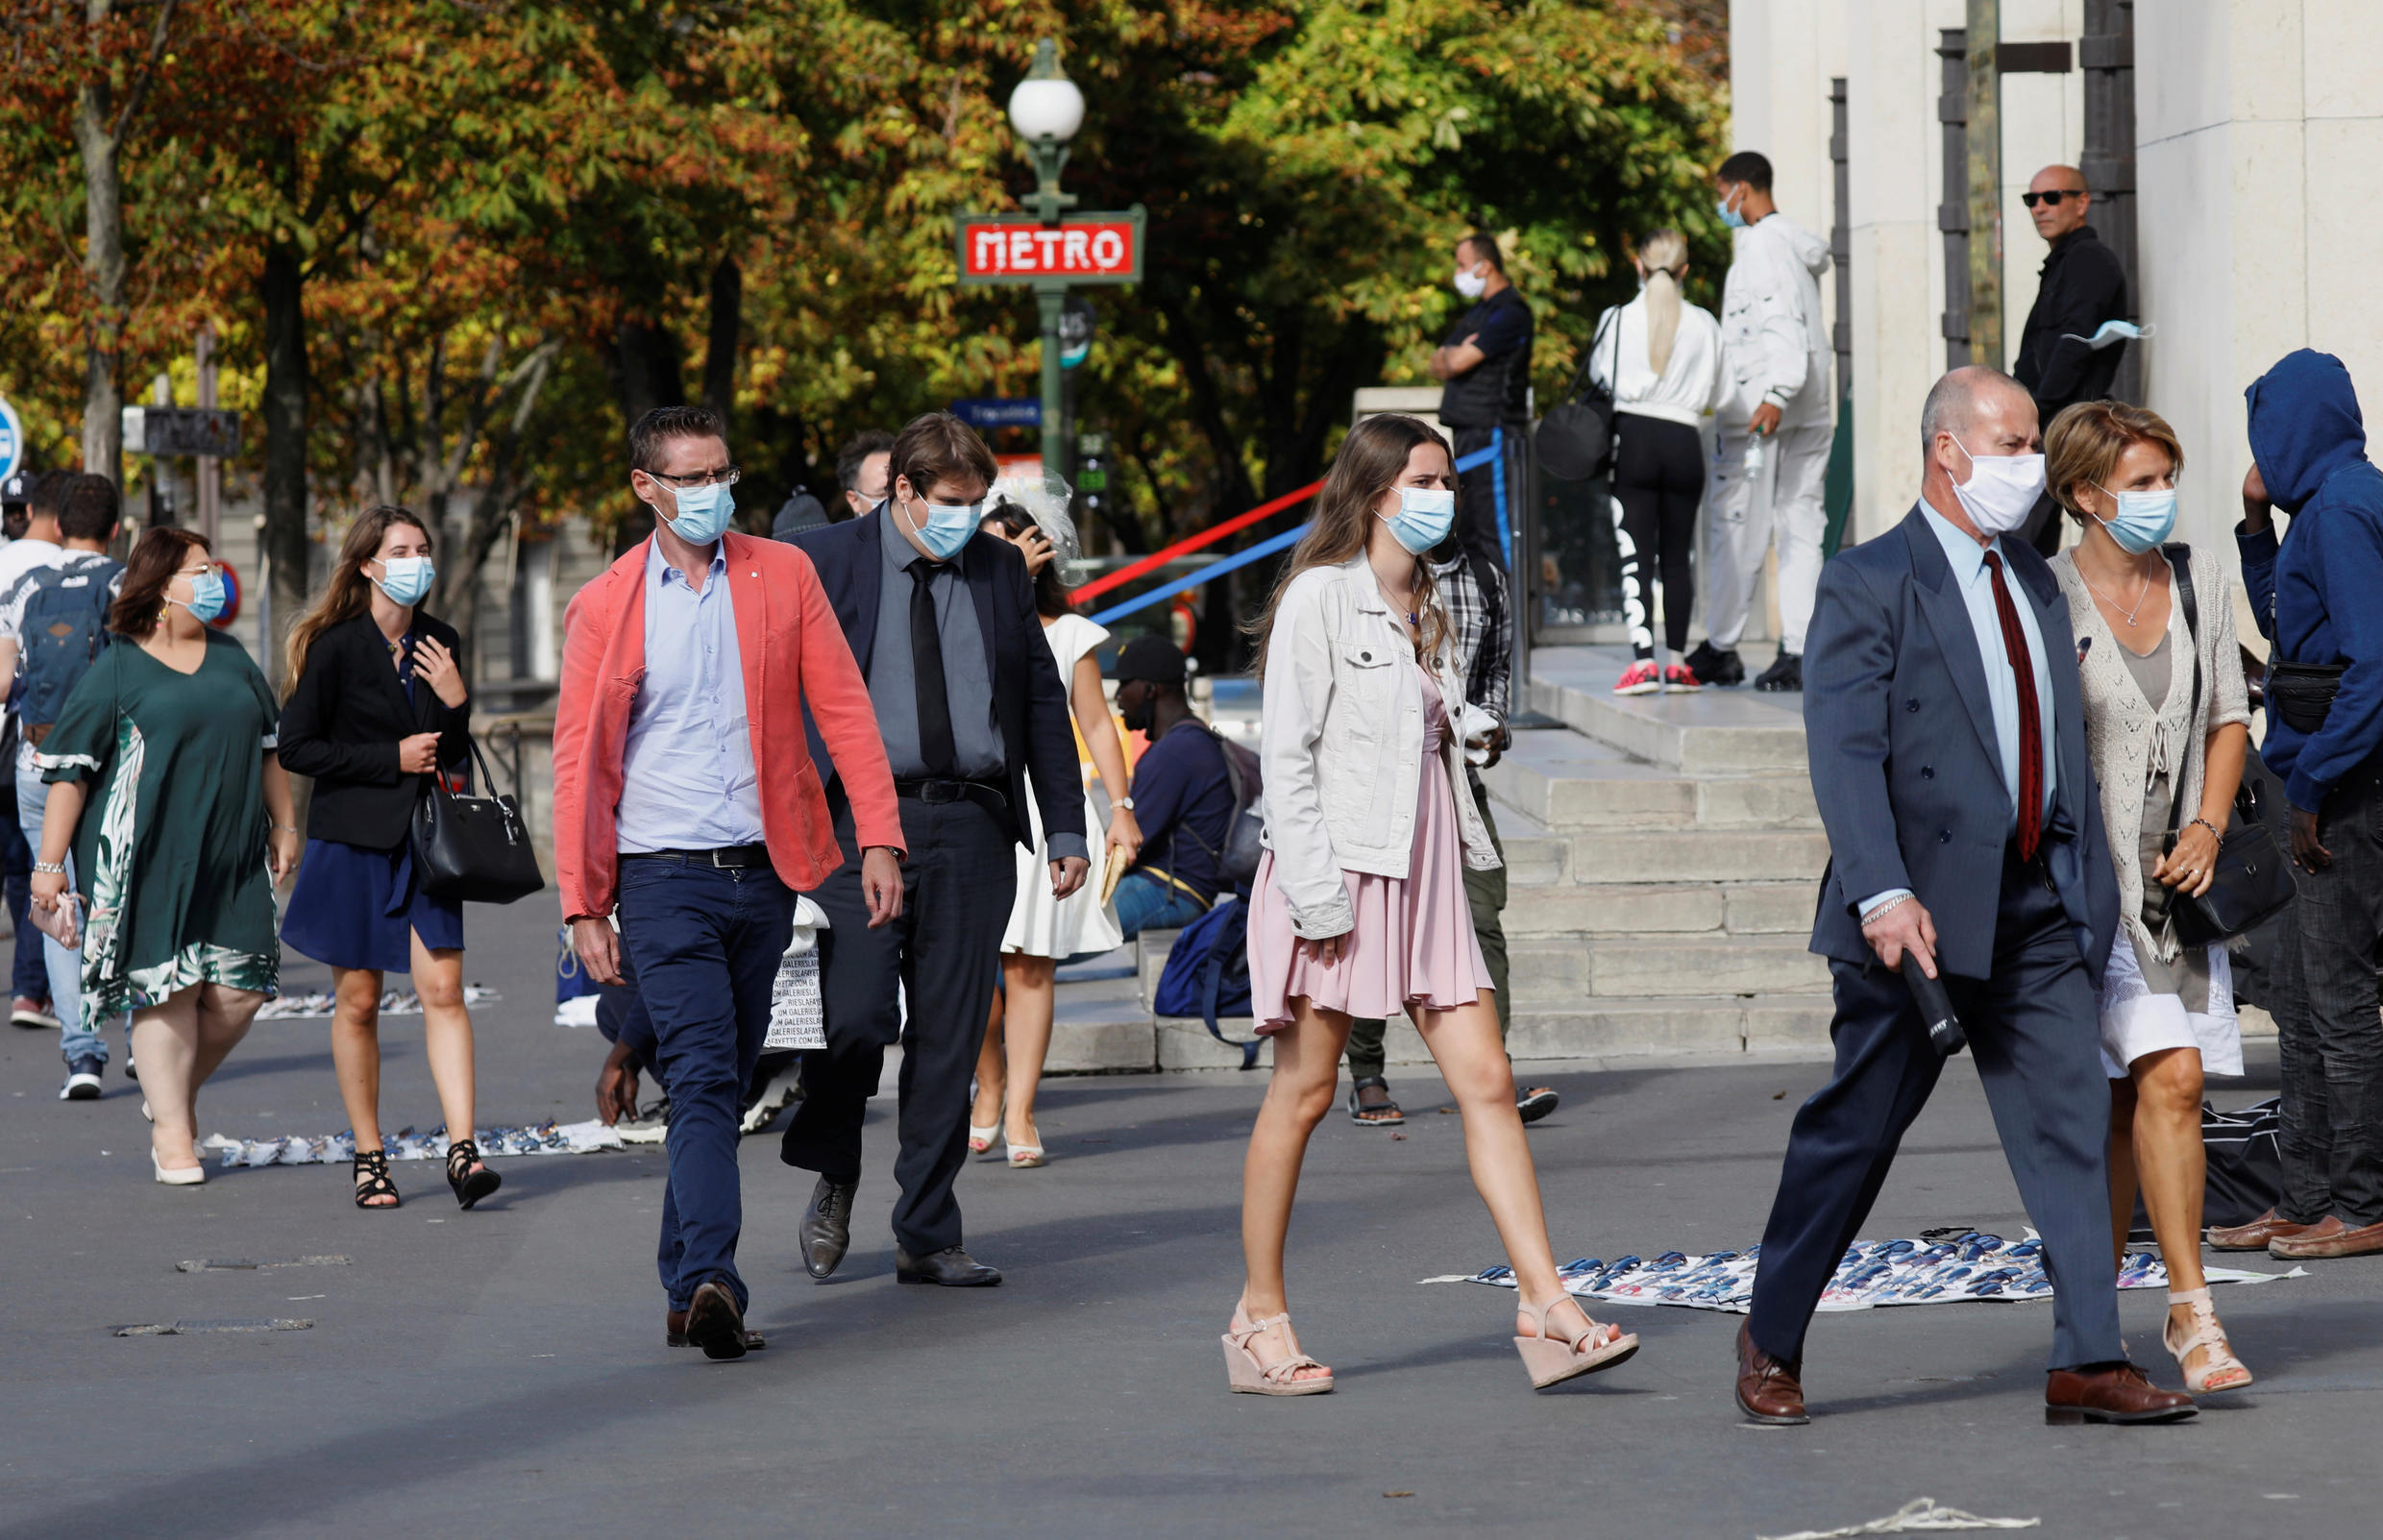 People wearing protective masks leave a Paris metro station as France reinforces mask-wearing as part of efforts to curb a resurgence of Covid-19 across the country, 28 August 2020.